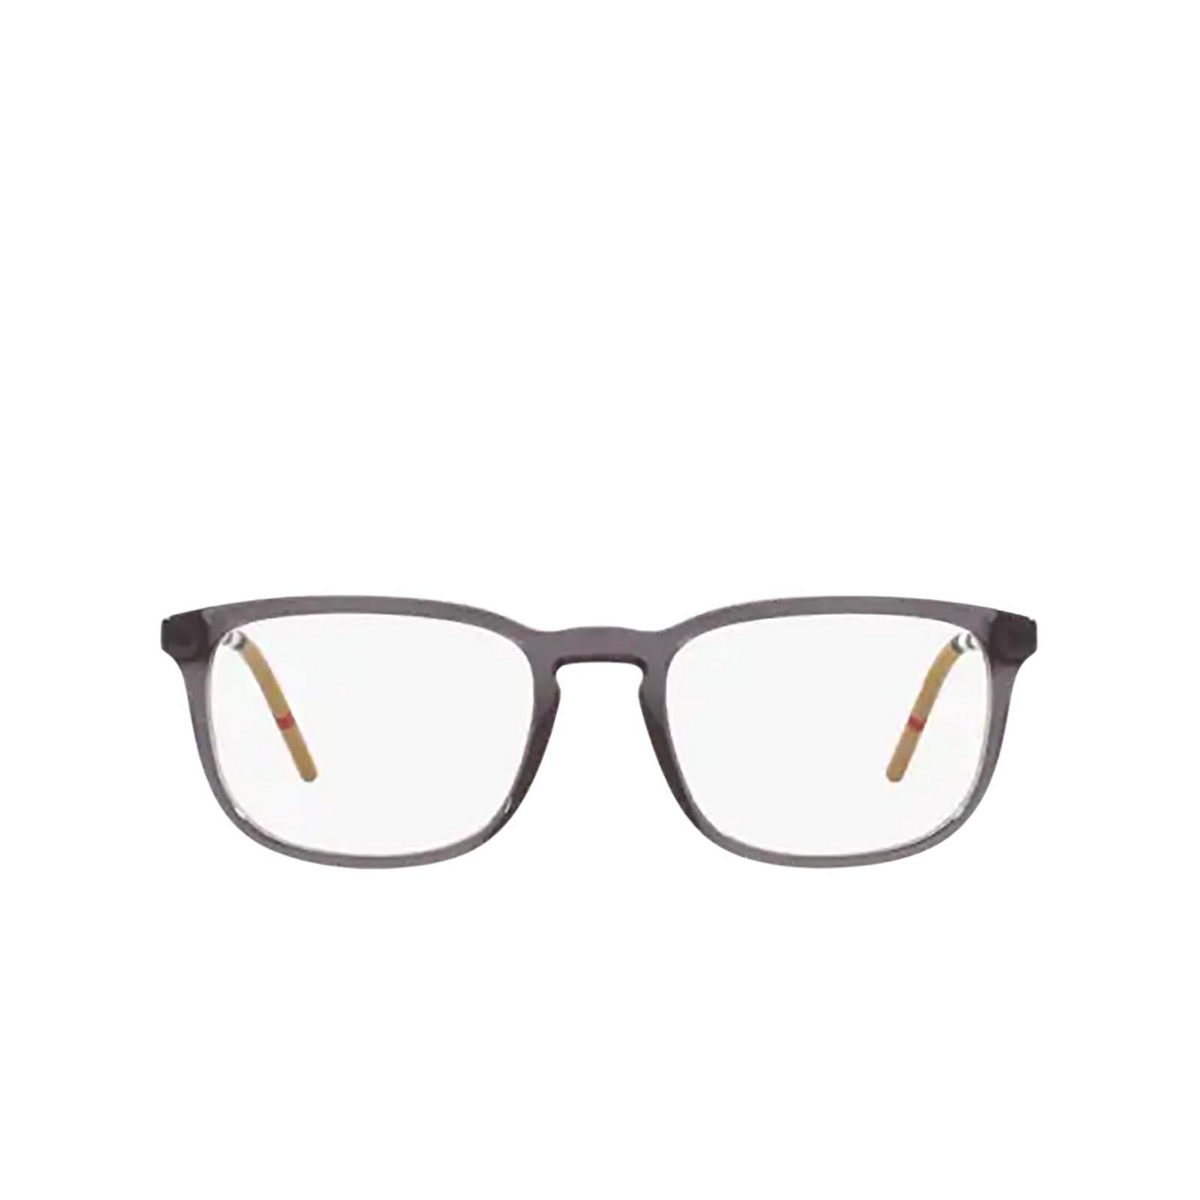 Burberry® Square Eyeglasses: BE2283 color Dark Grey 3544 - front view.